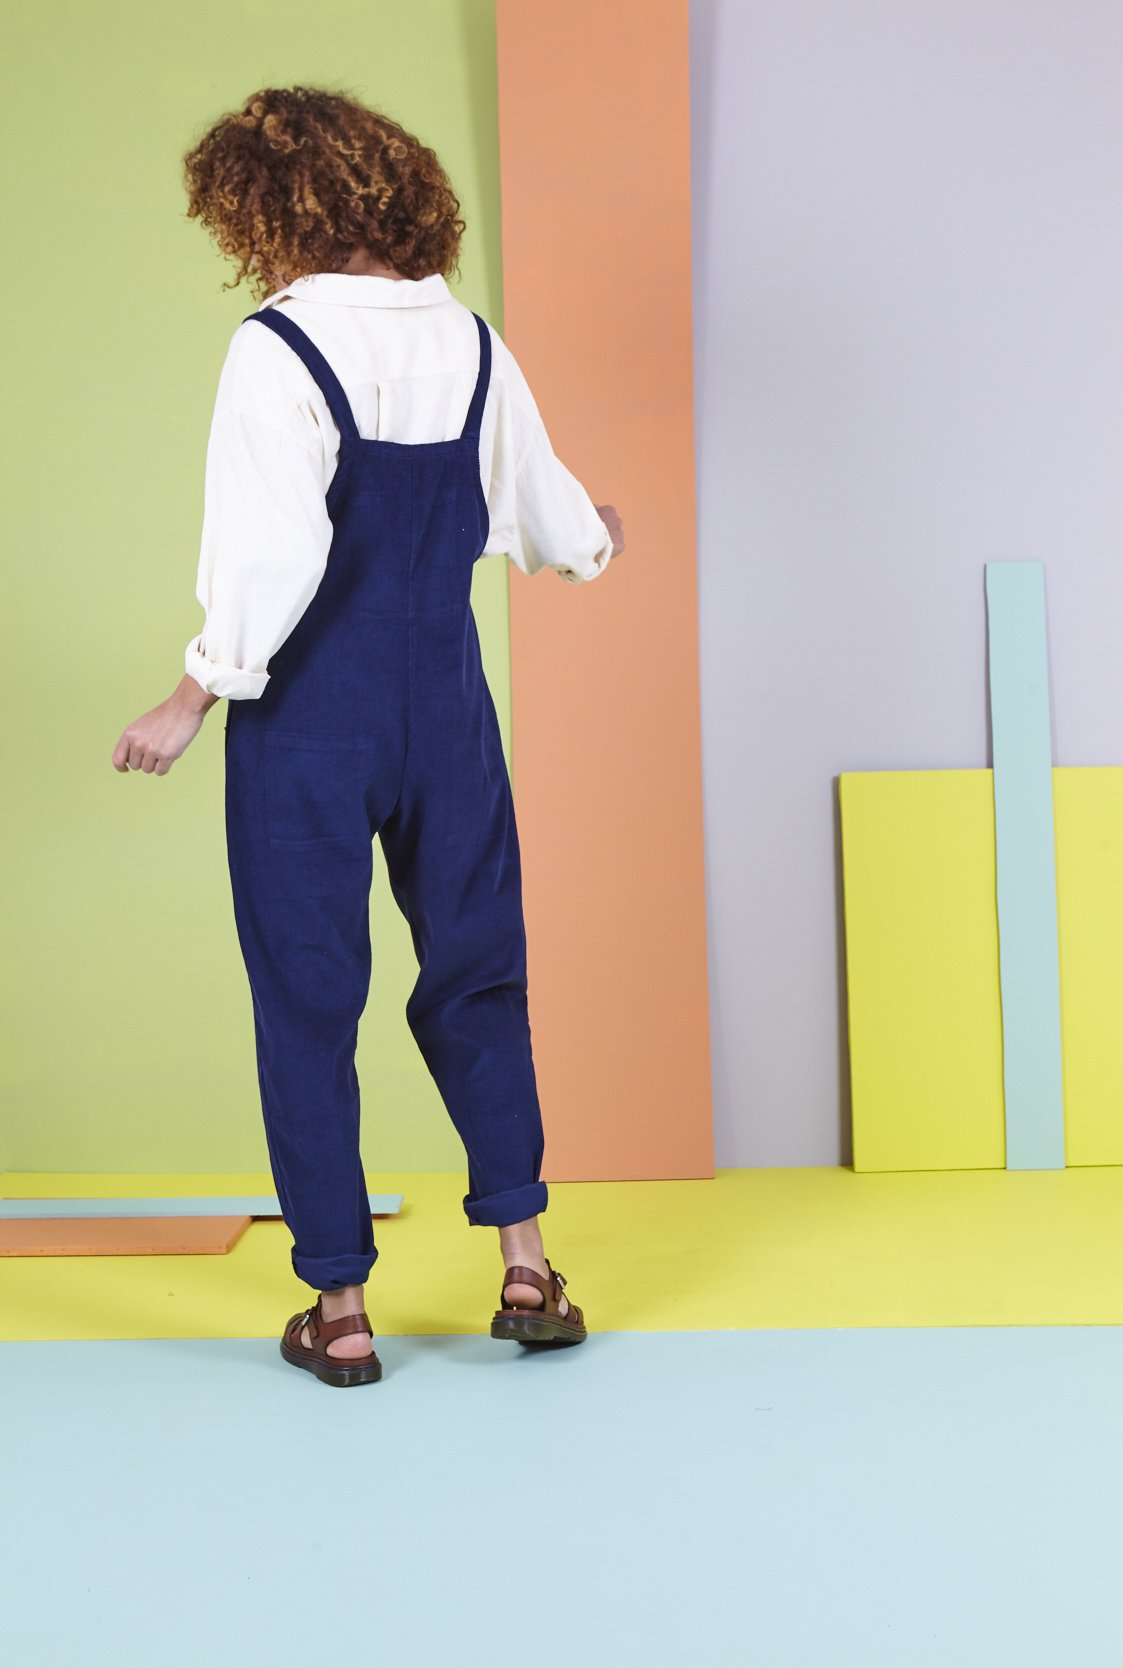 Organic Originals in Sailor Blue-Dungarees-Sancho's Dress